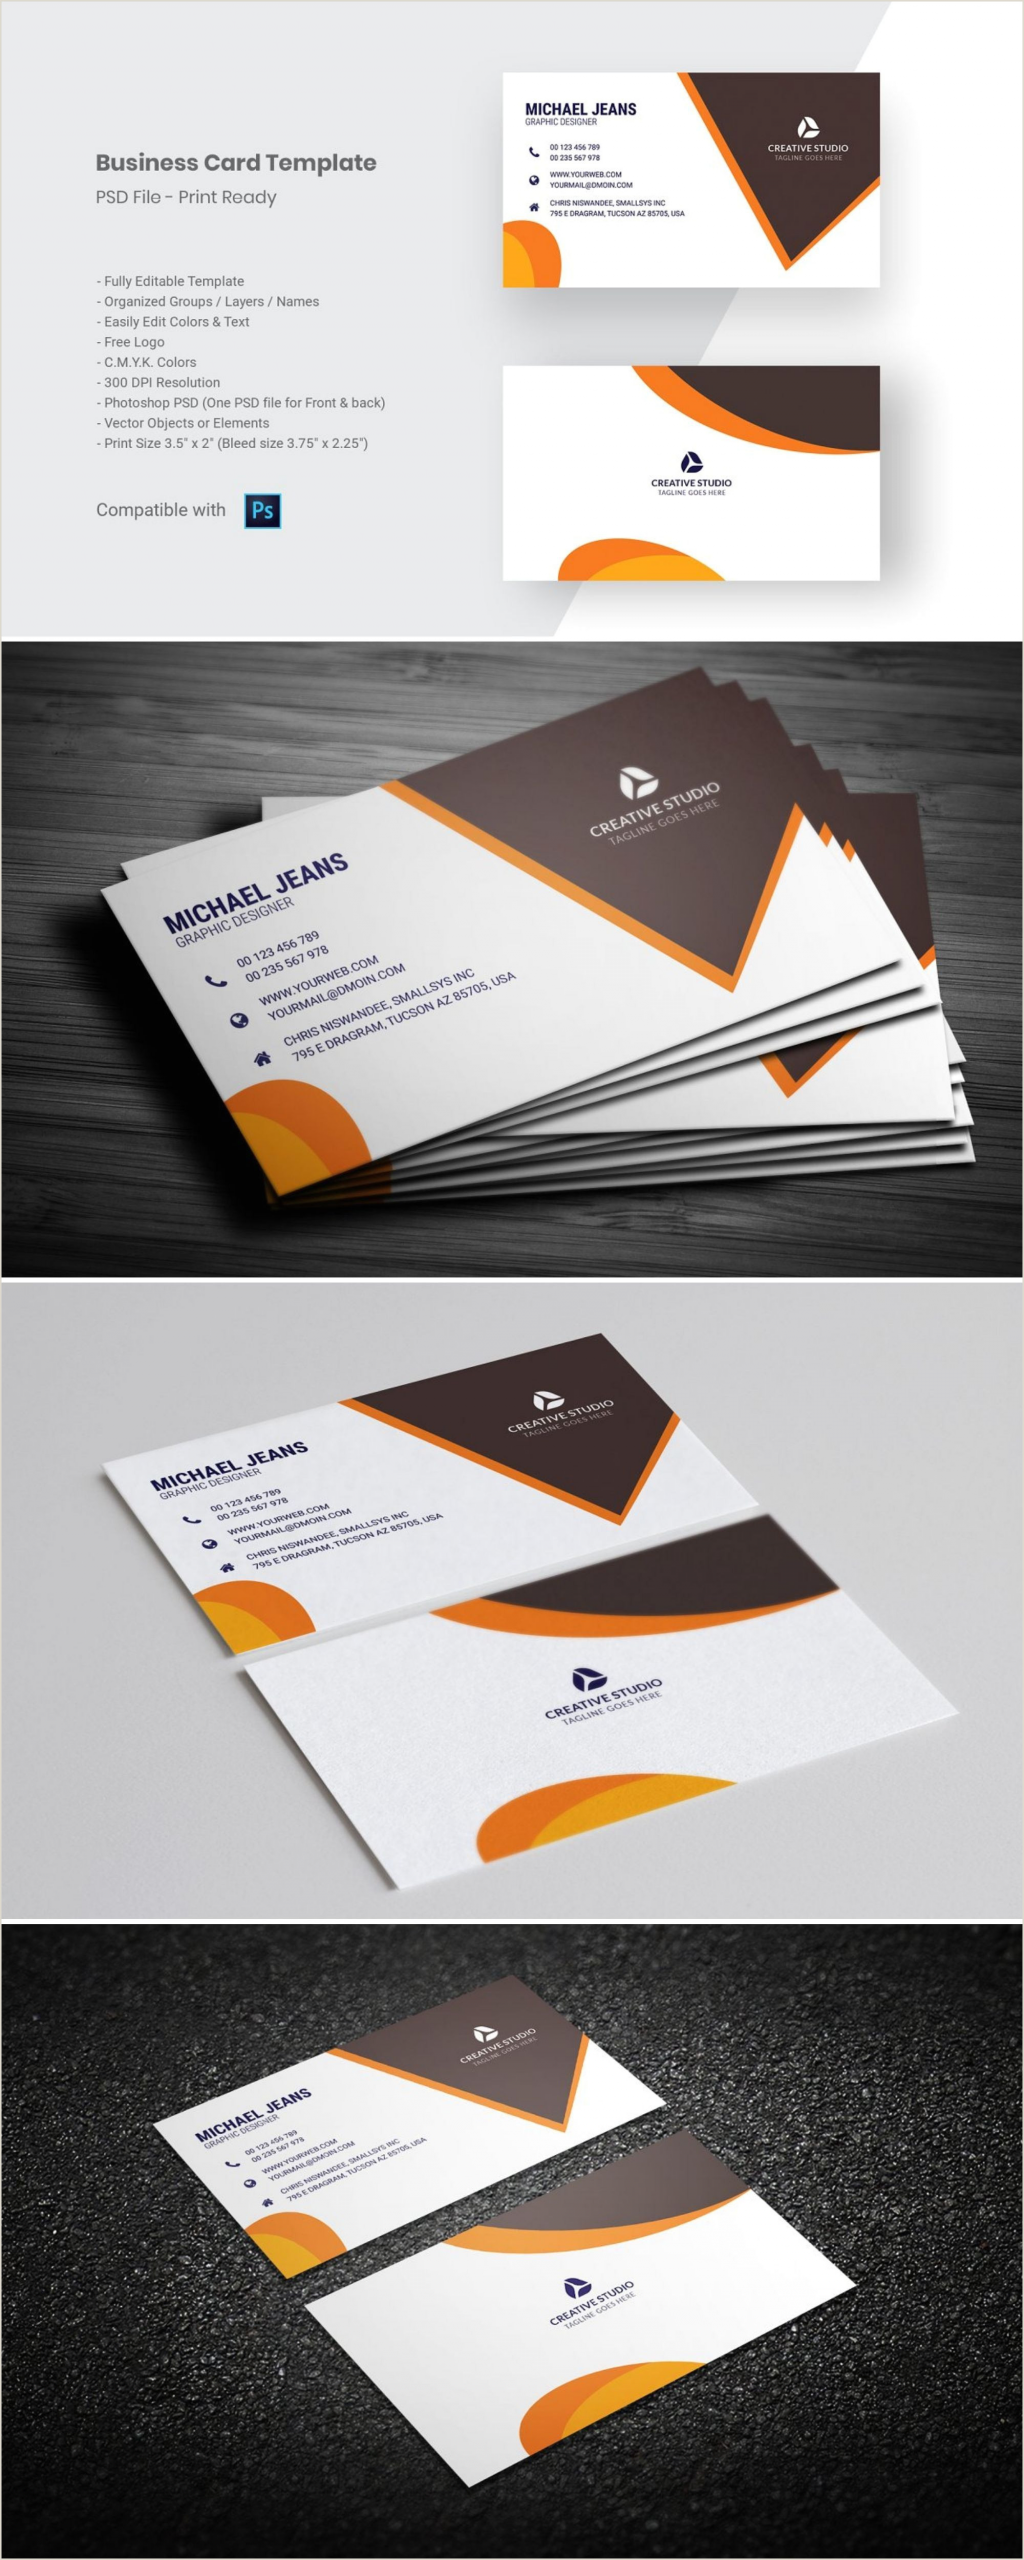 Rate Best Business Cards Modern Business Card Template